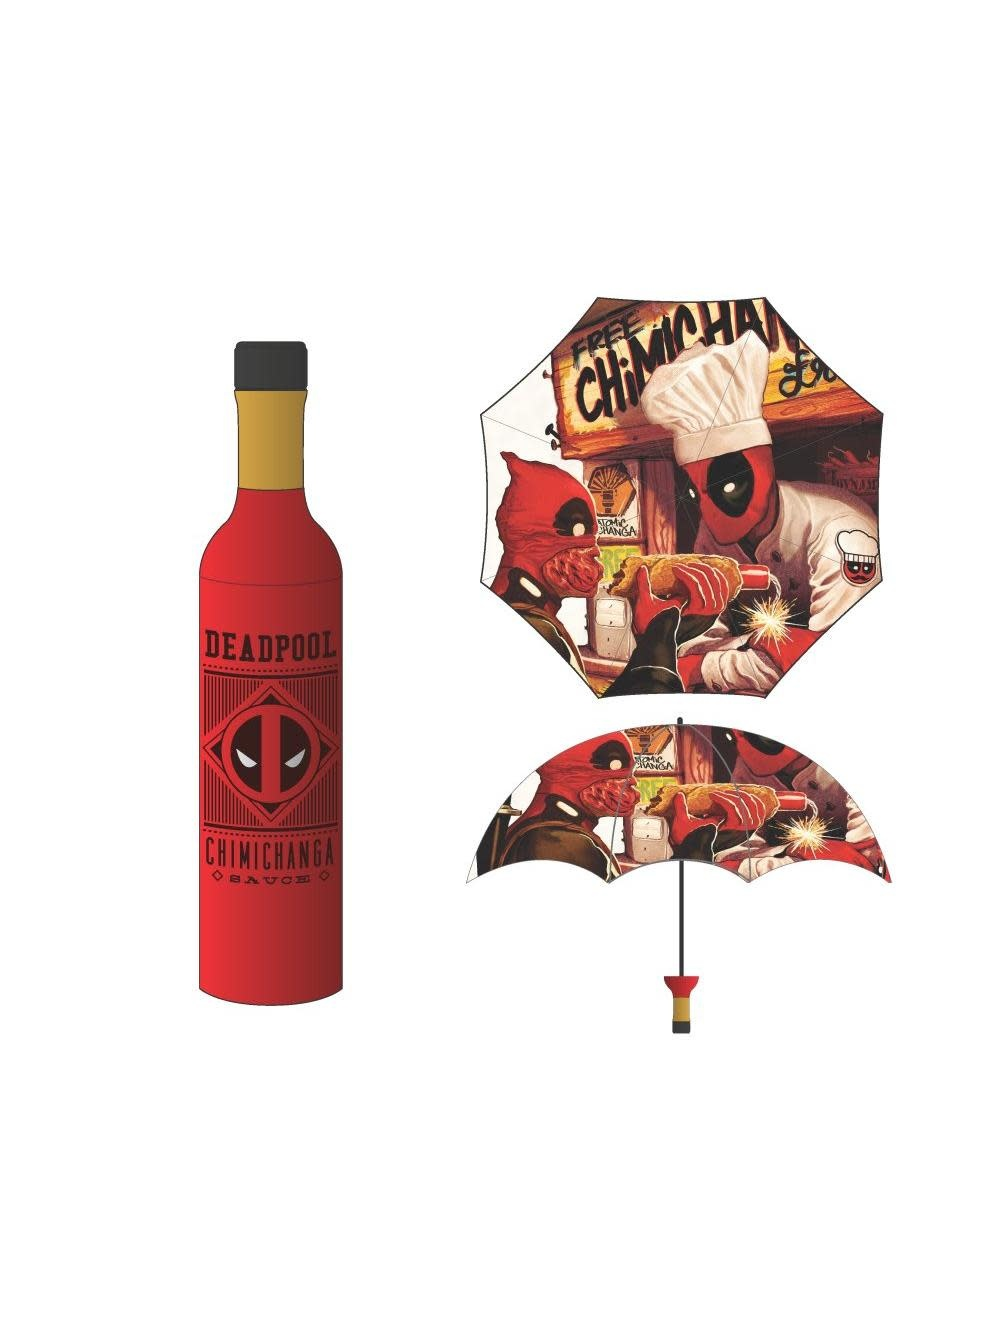 Bioworld Deadpool Chimichanga Bottle Umbrella